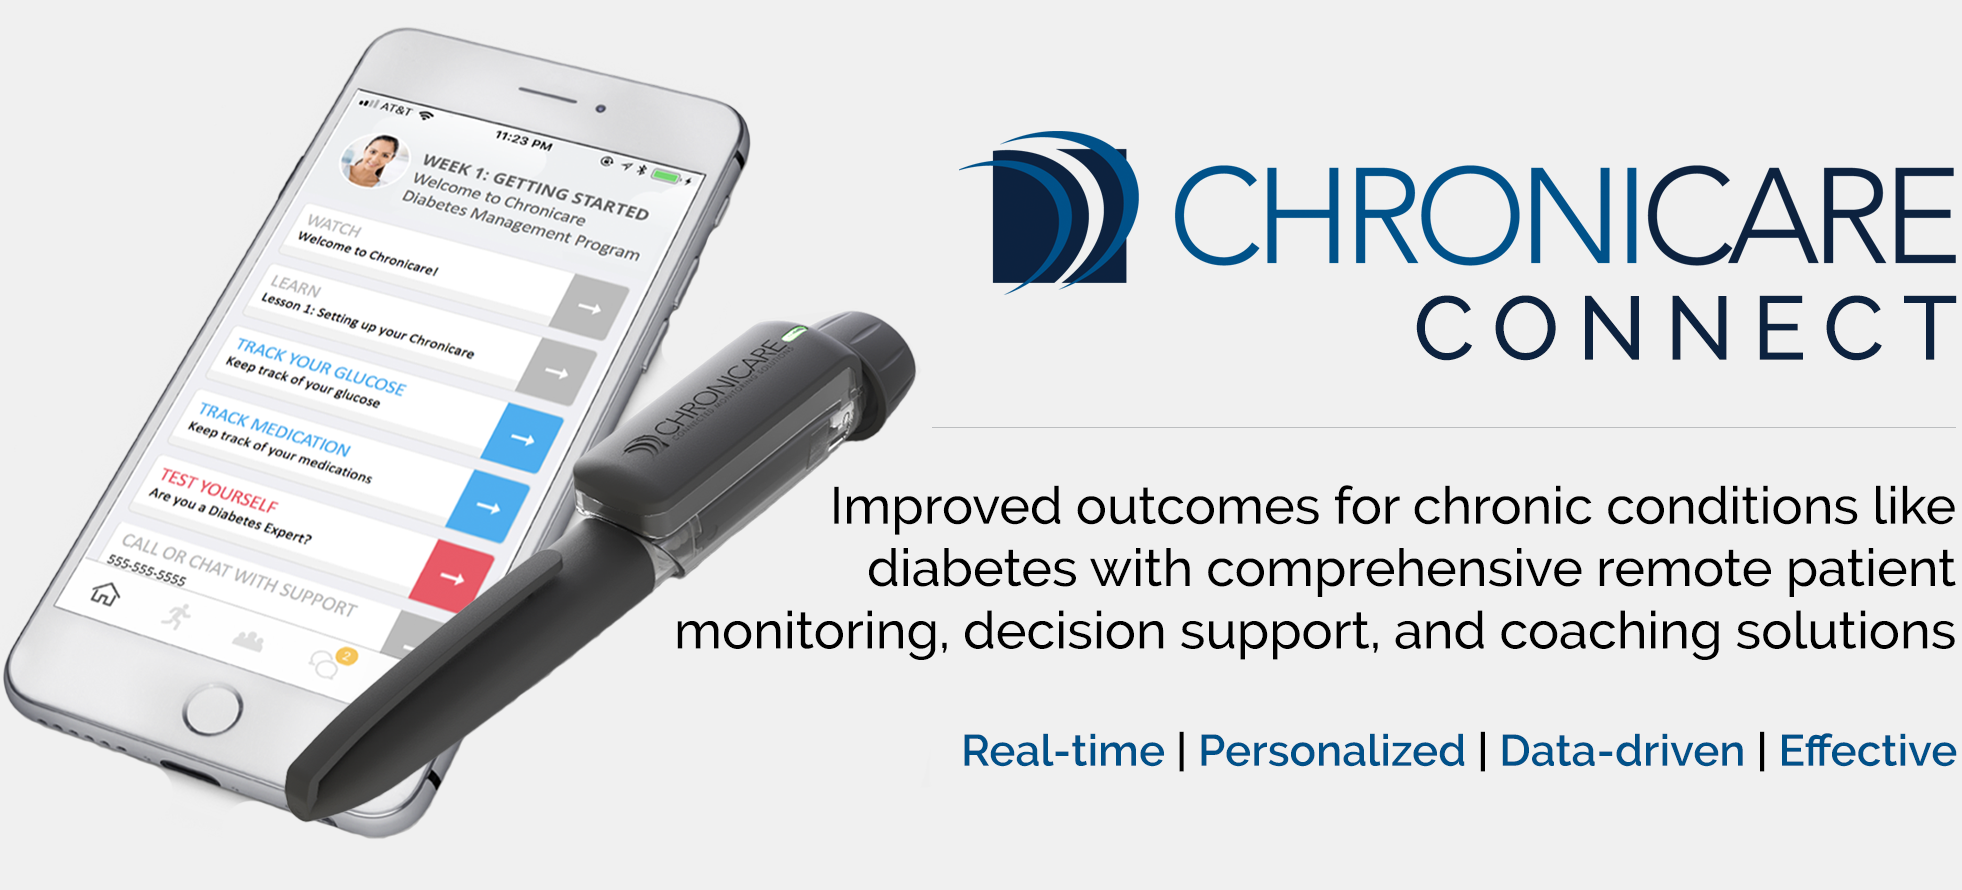 Improved outcomes for chronic conditions like diabetes with comprehensive remote patient monitoring, decision support, and coaching solutions.